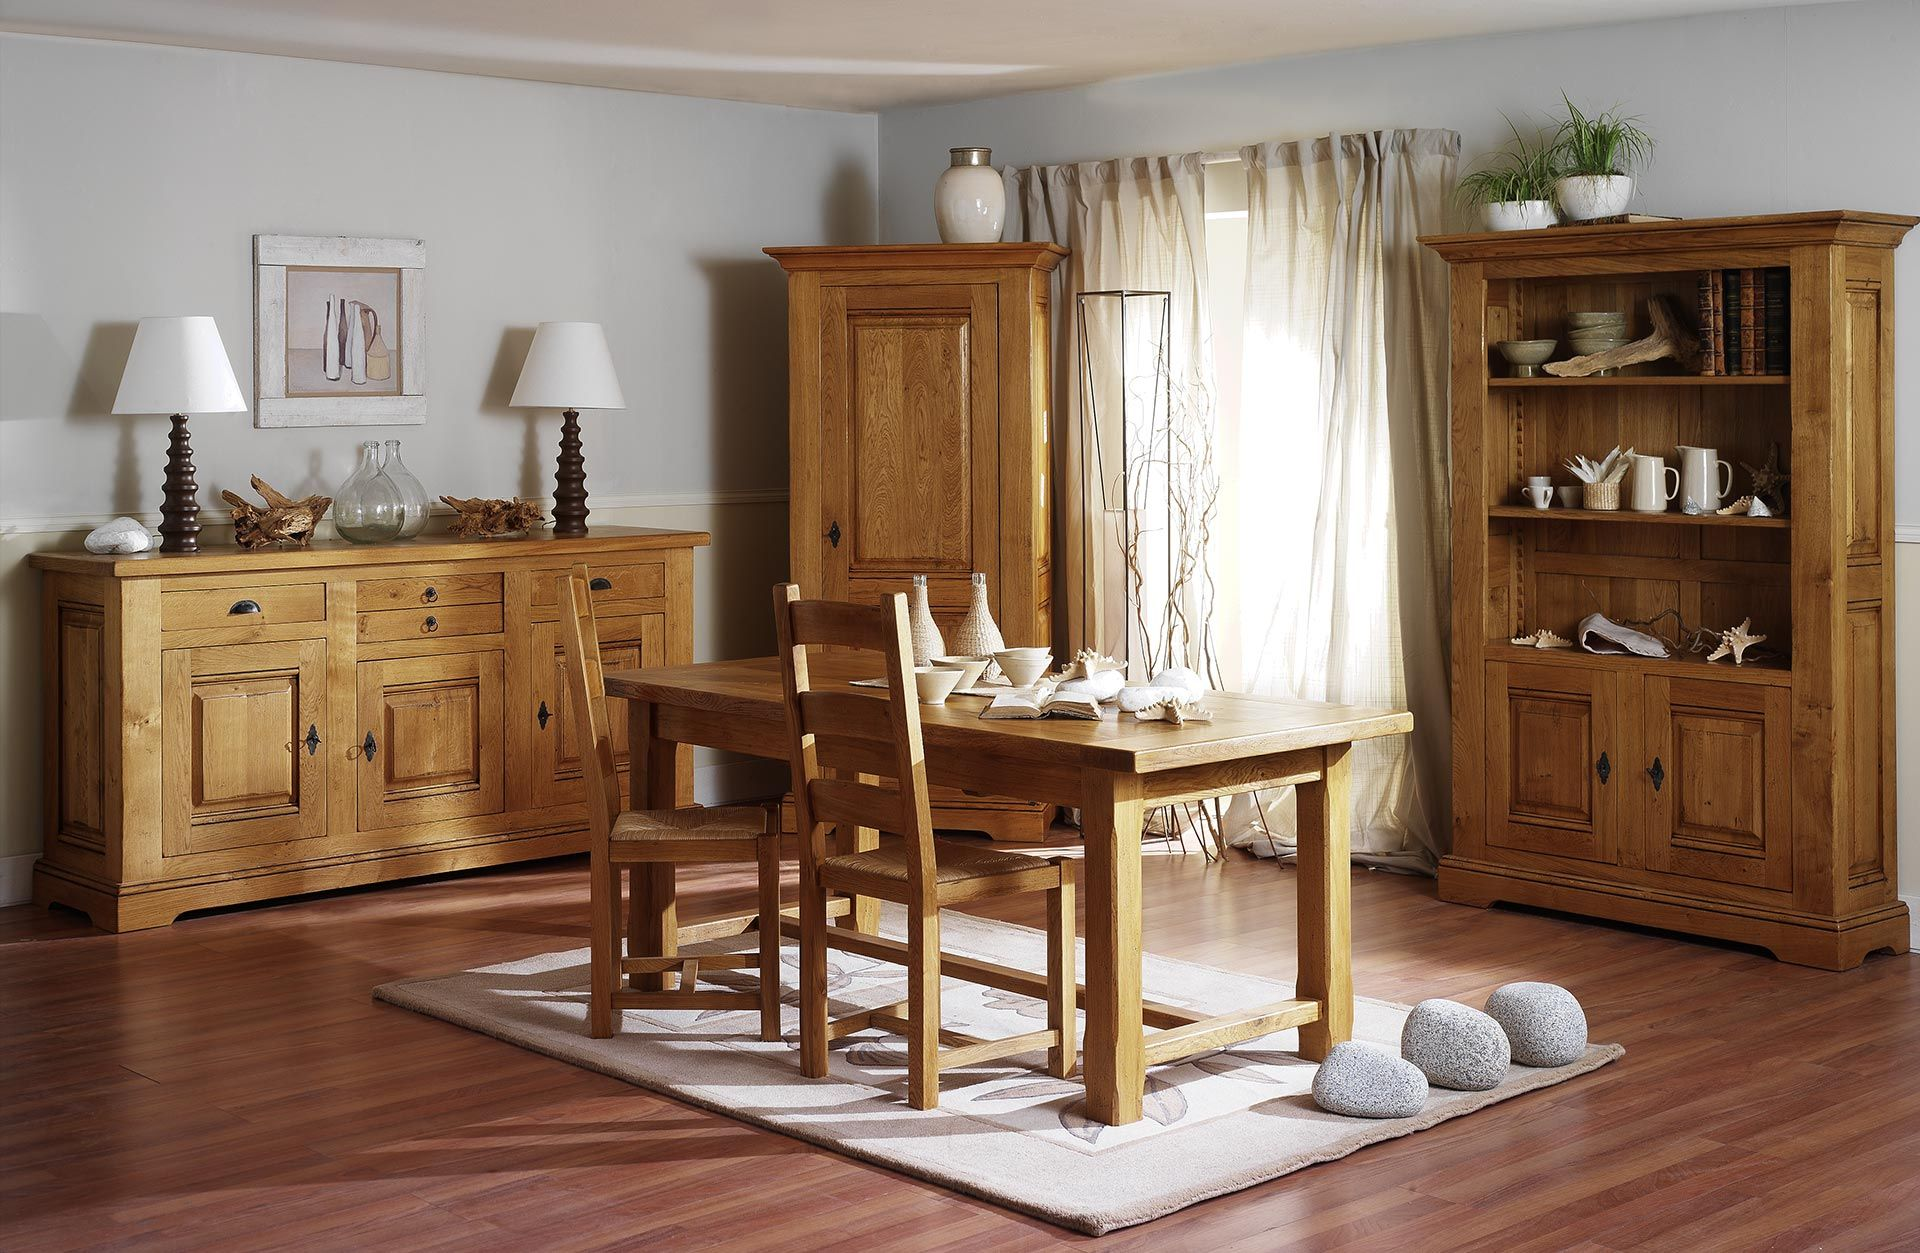 salle manger ch ne massif campagnarde actuelle. Black Bedroom Furniture Sets. Home Design Ideas